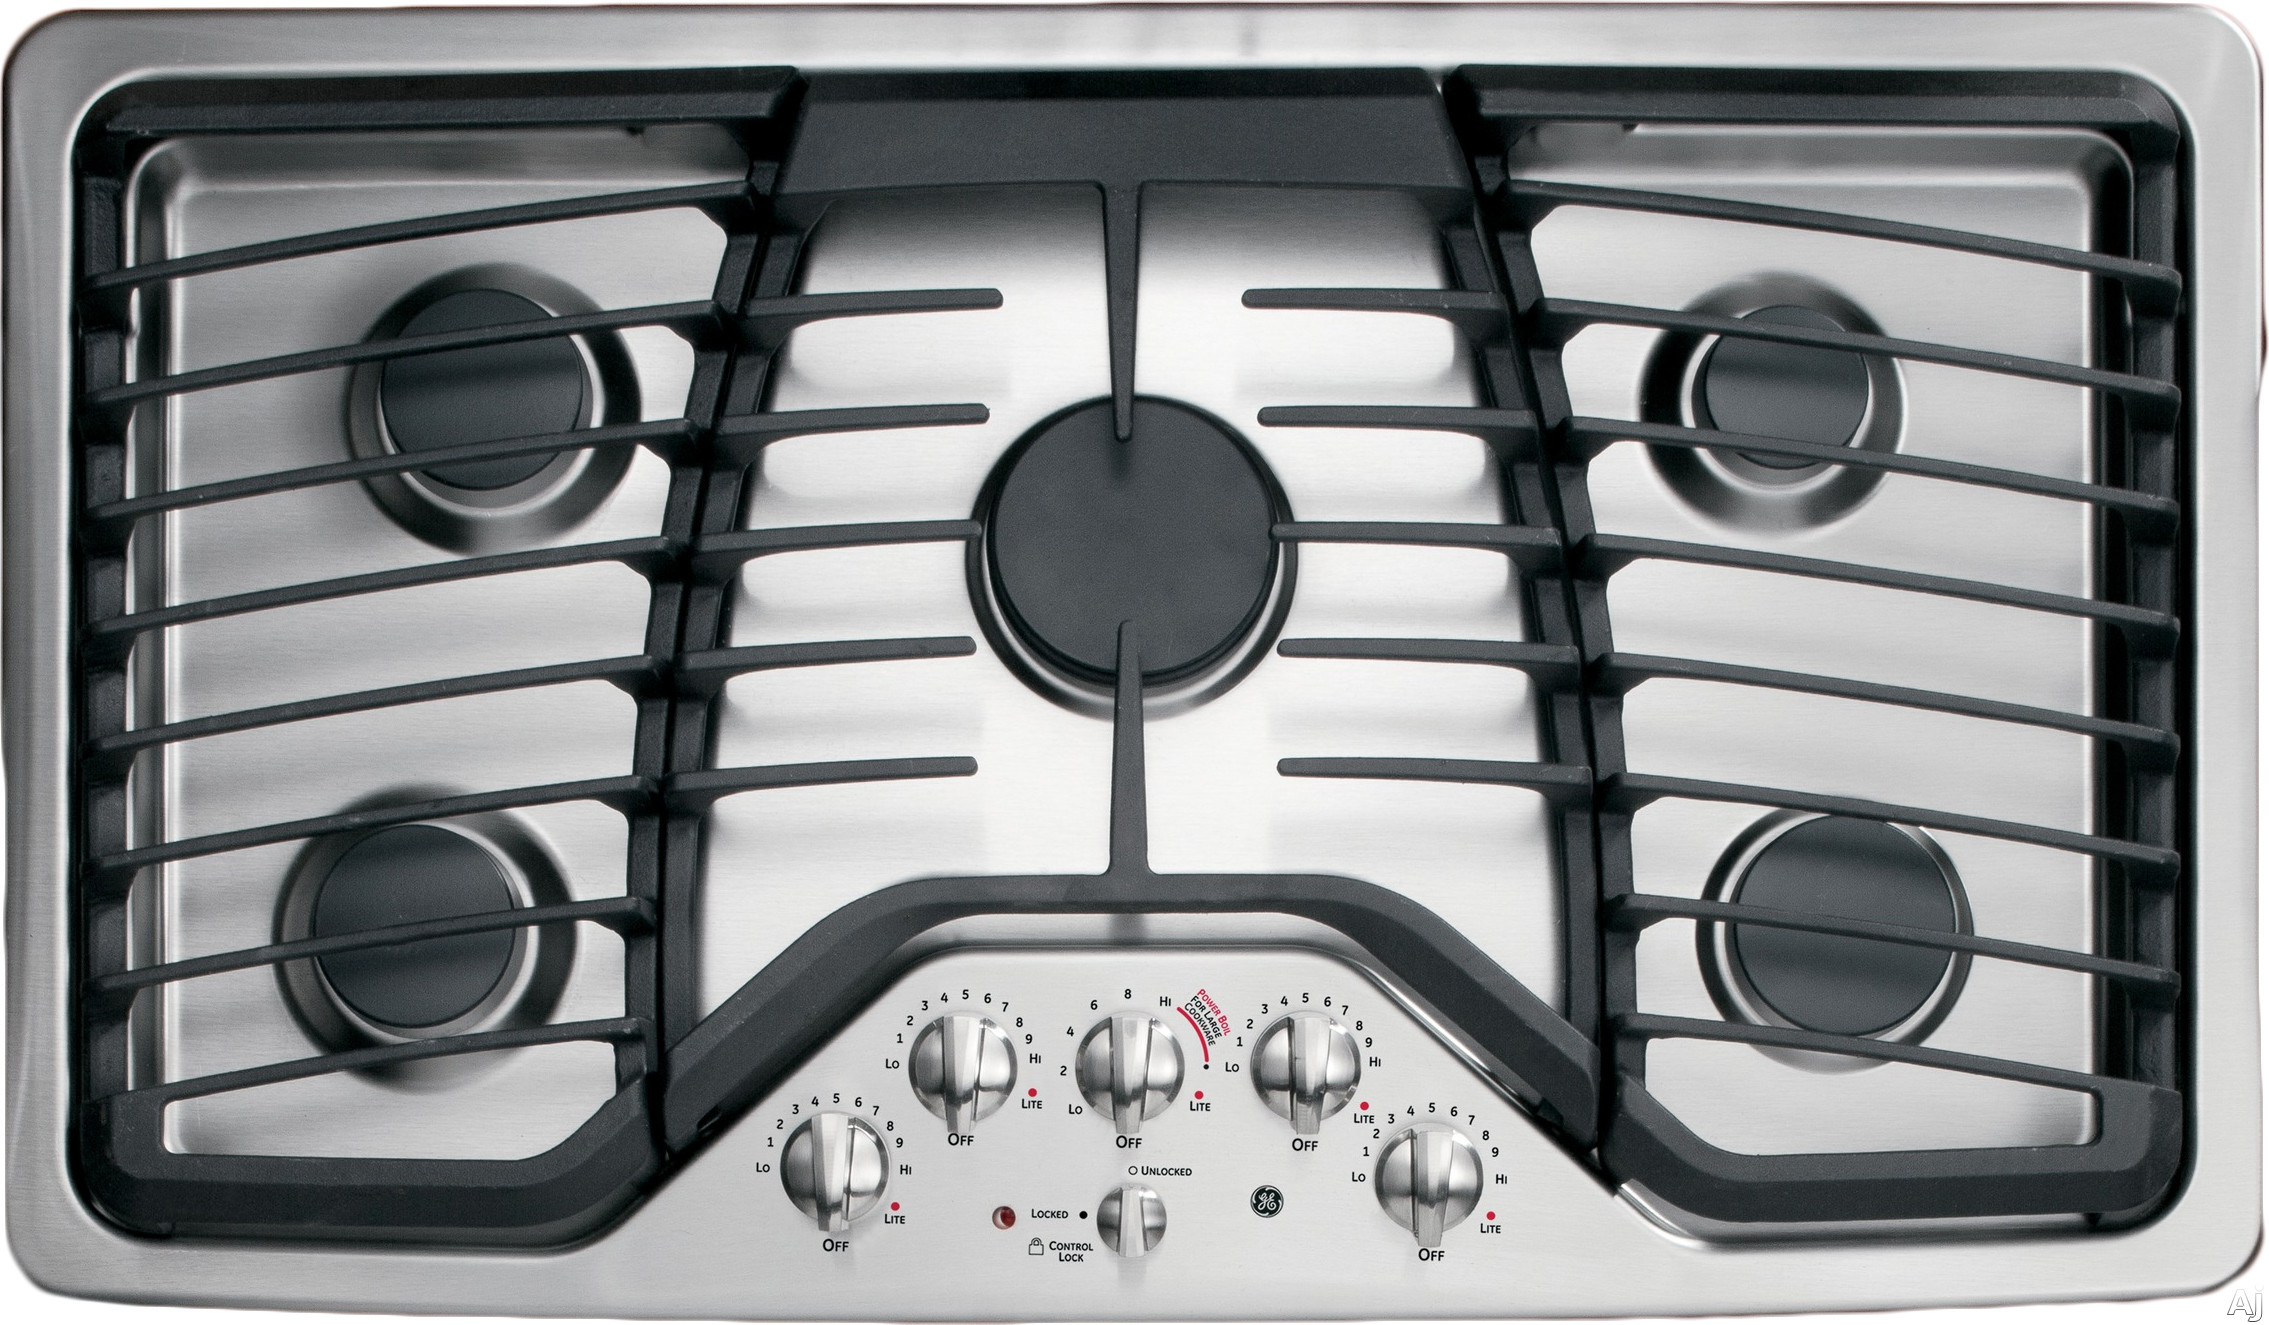 GE Profile PGP976DET 36 Inch Gas Cooktop with 5 Sealed Burners, 17,000 BTU PowerBoil, Precise Simmer Burner, Heavy Cast Grates, Child Lock, LED Backlit Knobs, GE Fits! Guarantee and ADA Compliant